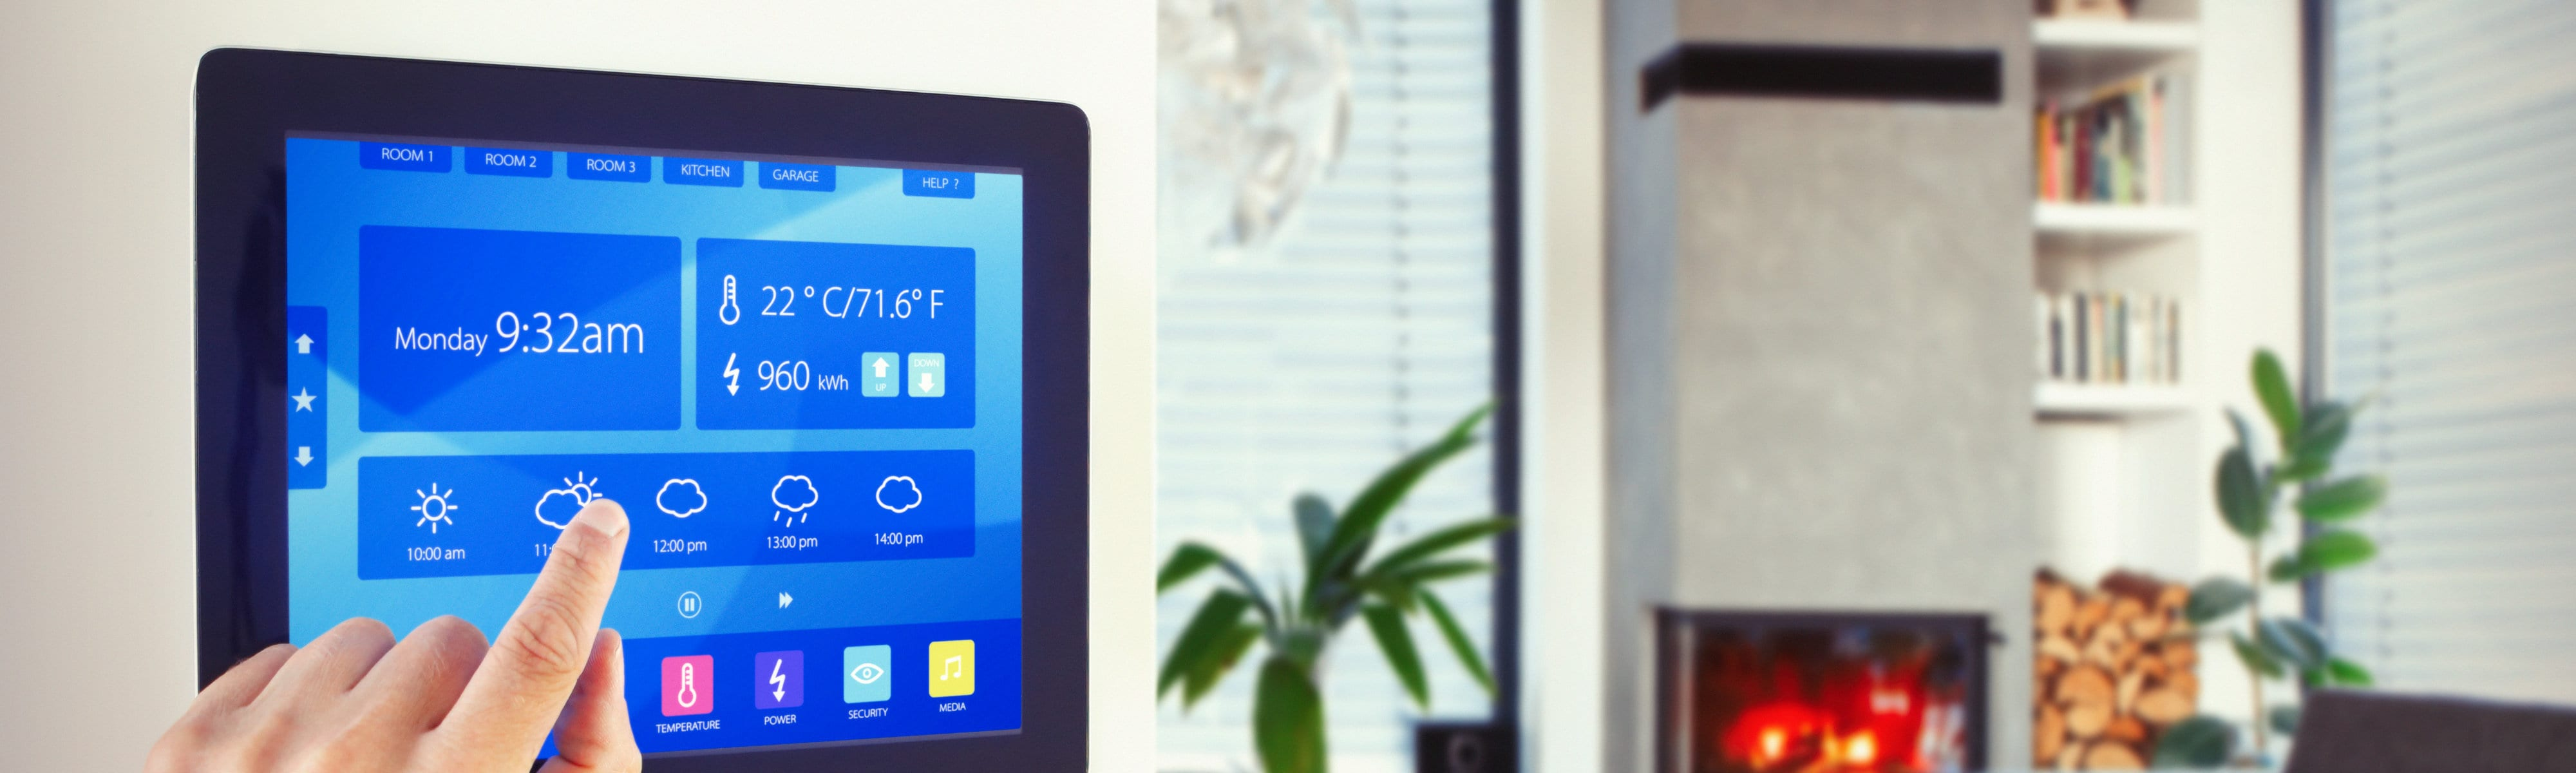 home-automation-tablet